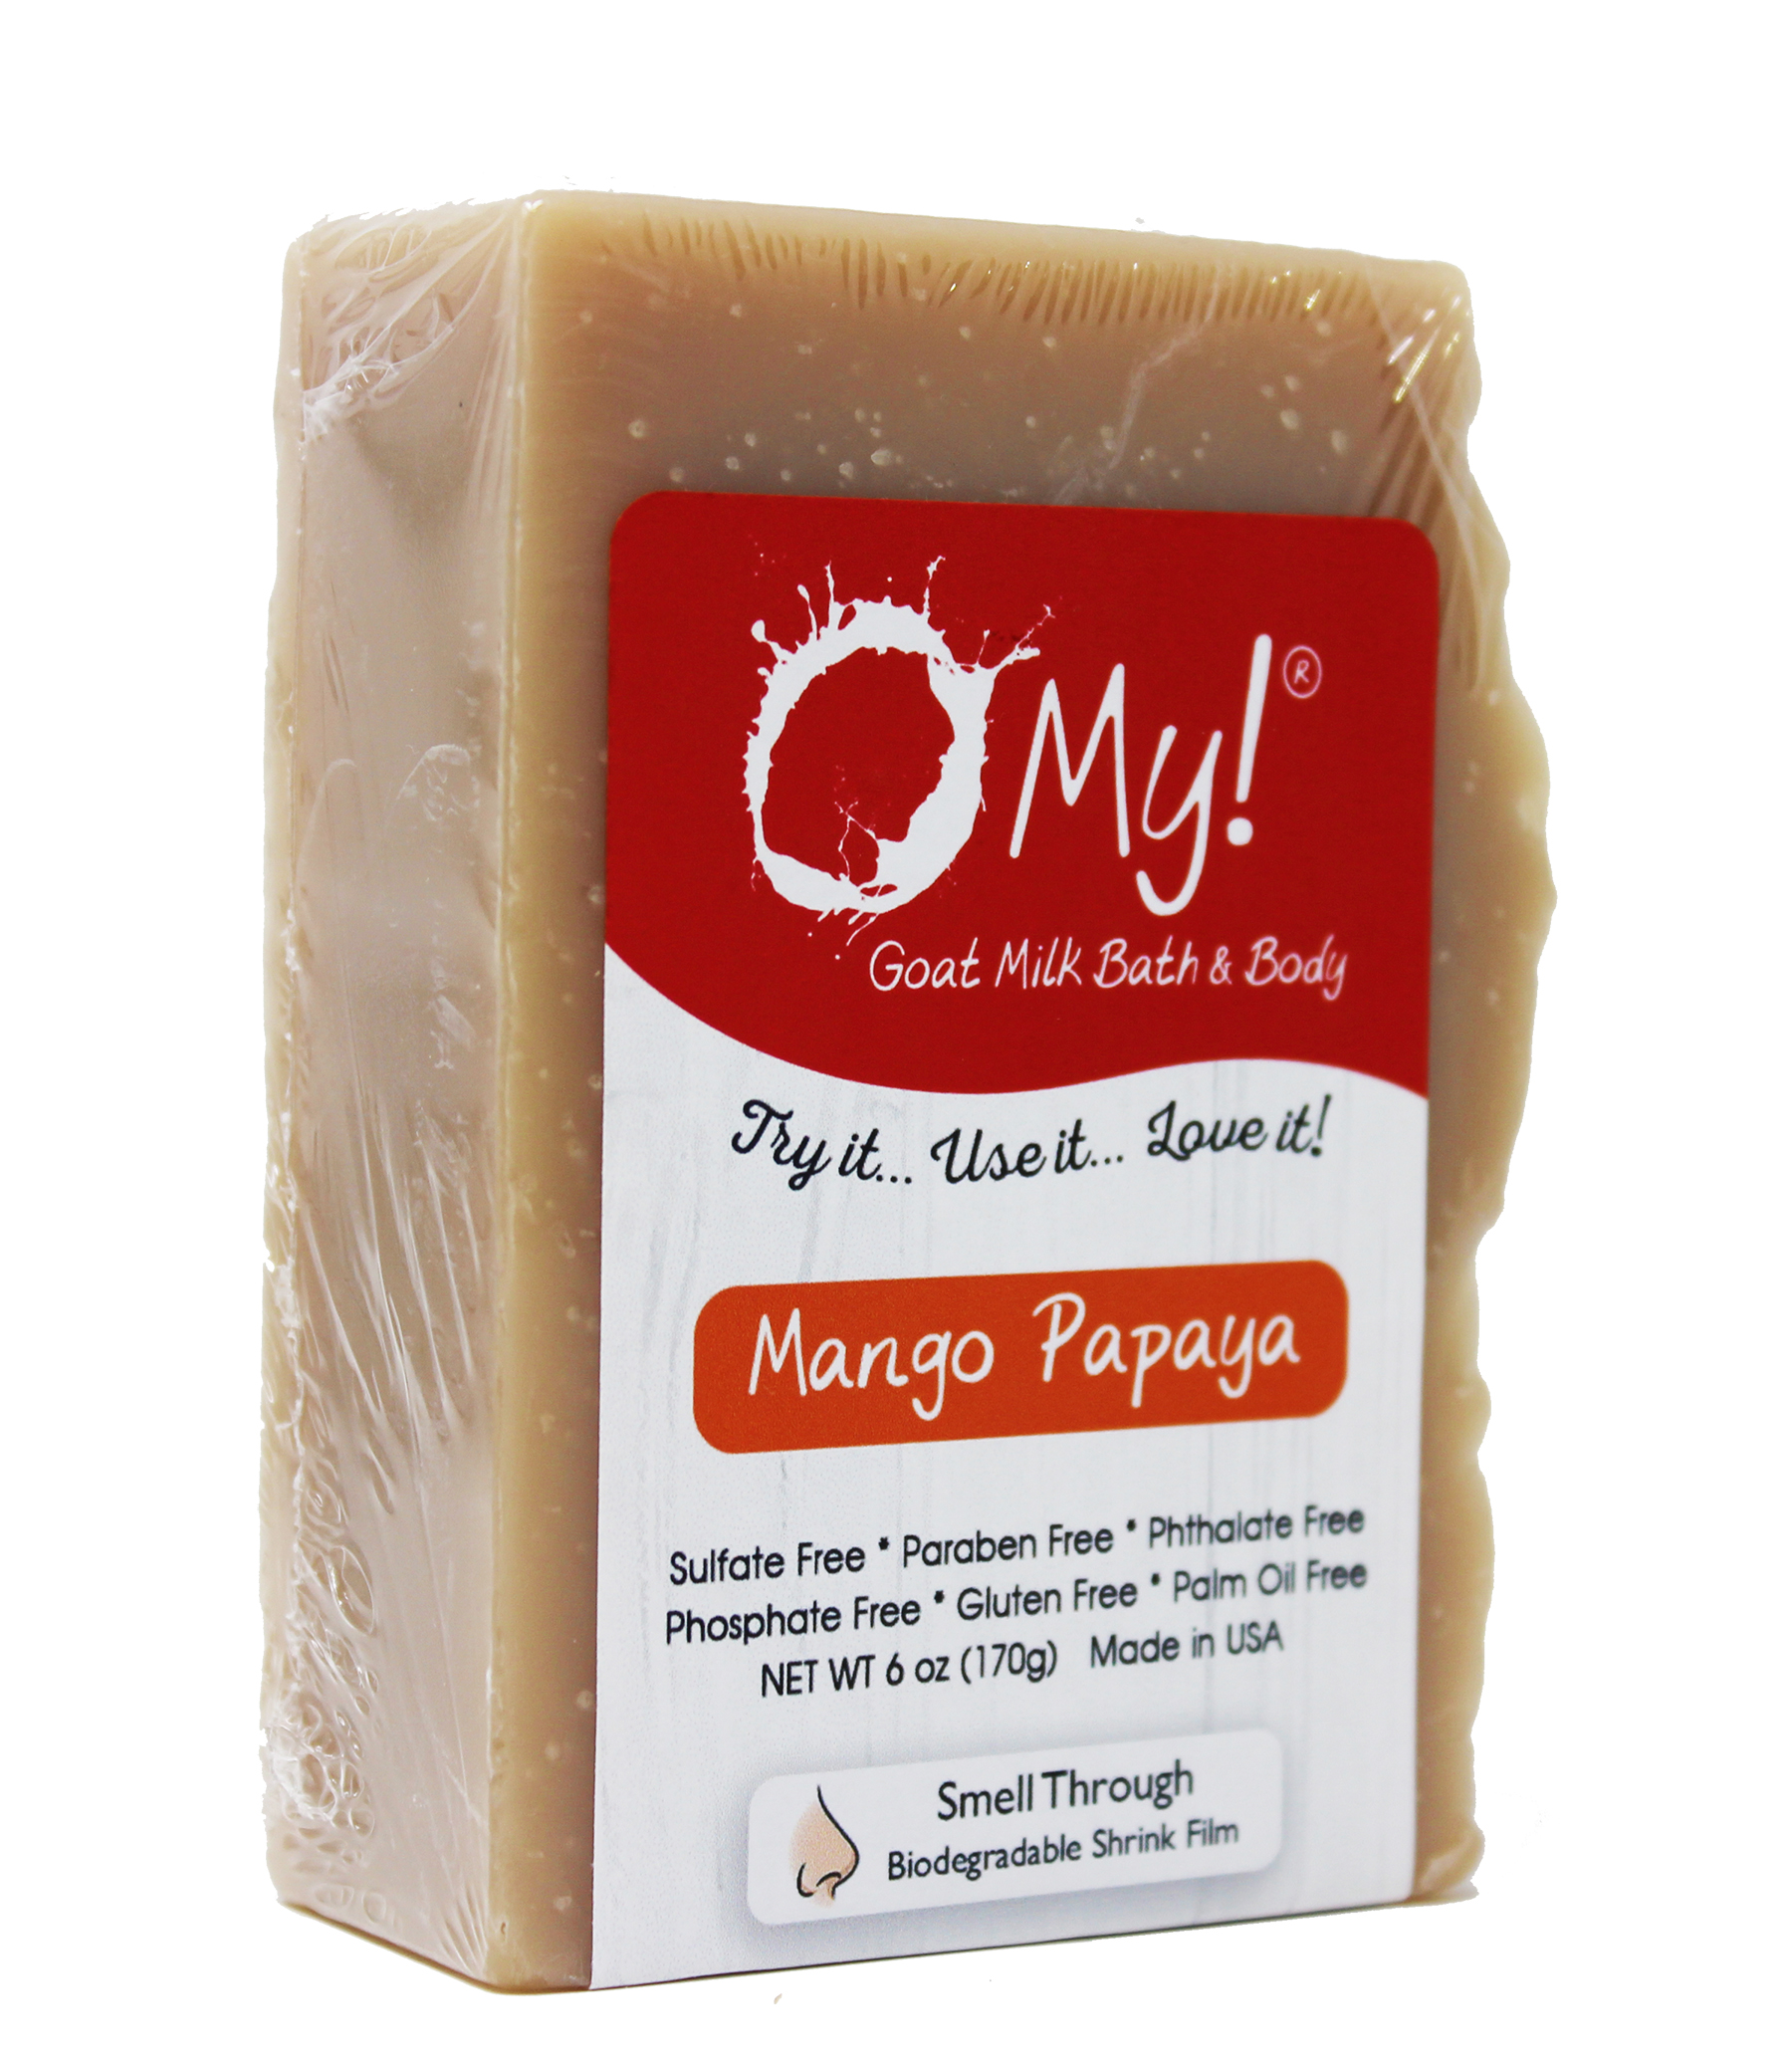 O My! Goat Milk Soap 6oz Bar - Mango Papaya | Made with Farm-Fresh Goat Milk | Moisturizes dry skin | Gently Exfoliates | Paraben Free | Leaping Bunny Certified | Made in USA